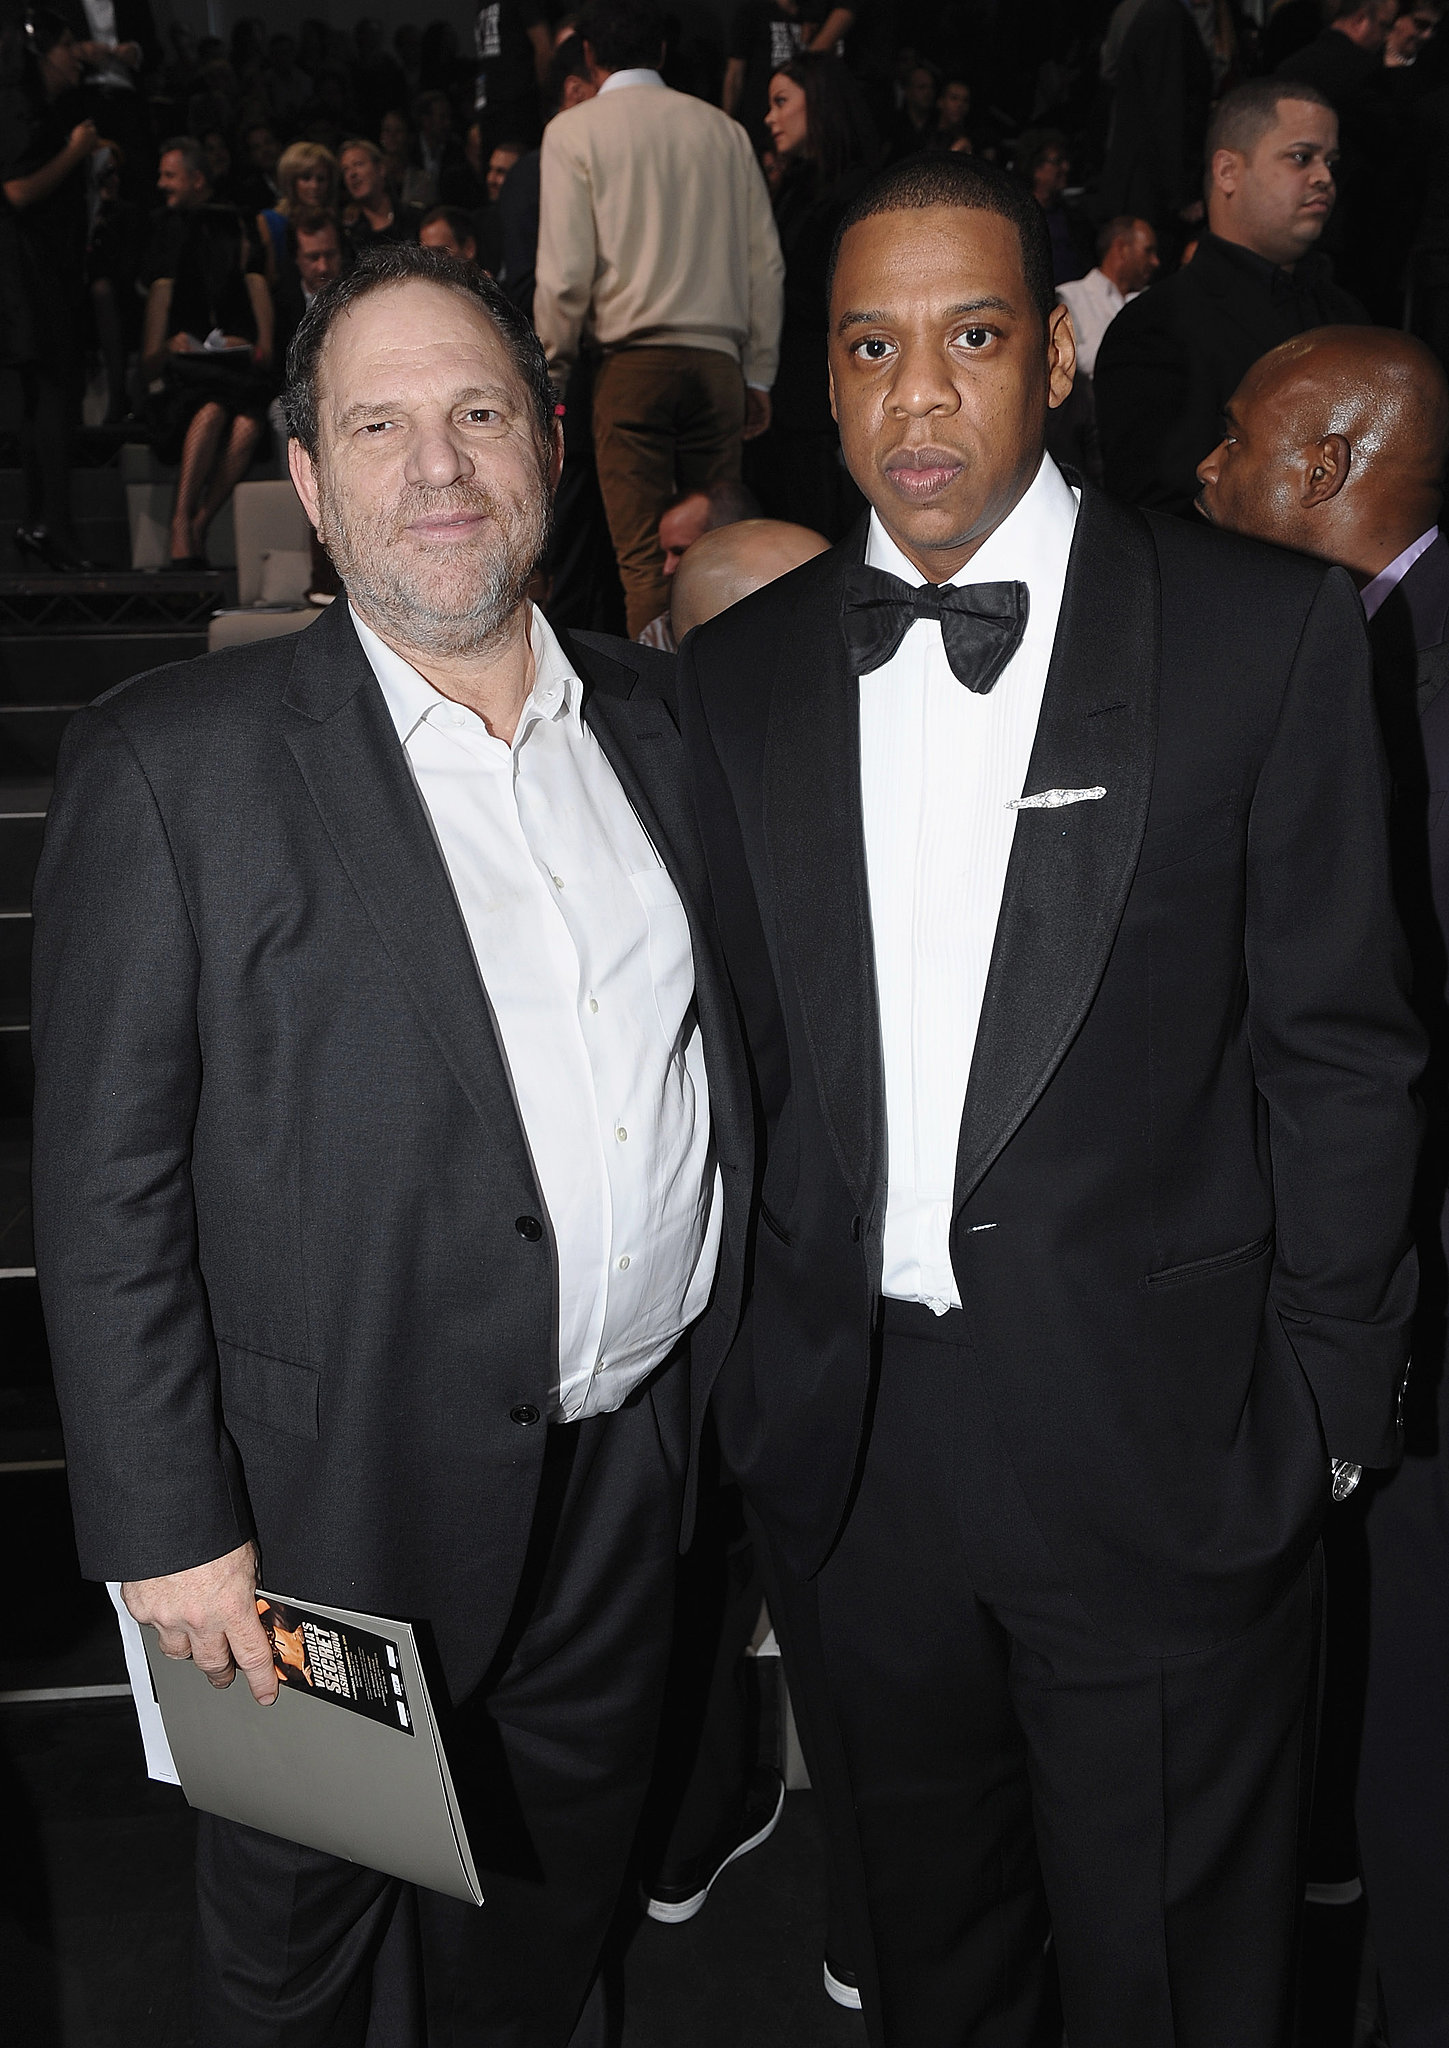 Harvey Weinstein and a bow tie-clad Jay-Z posed together before taking their seats in 2009.